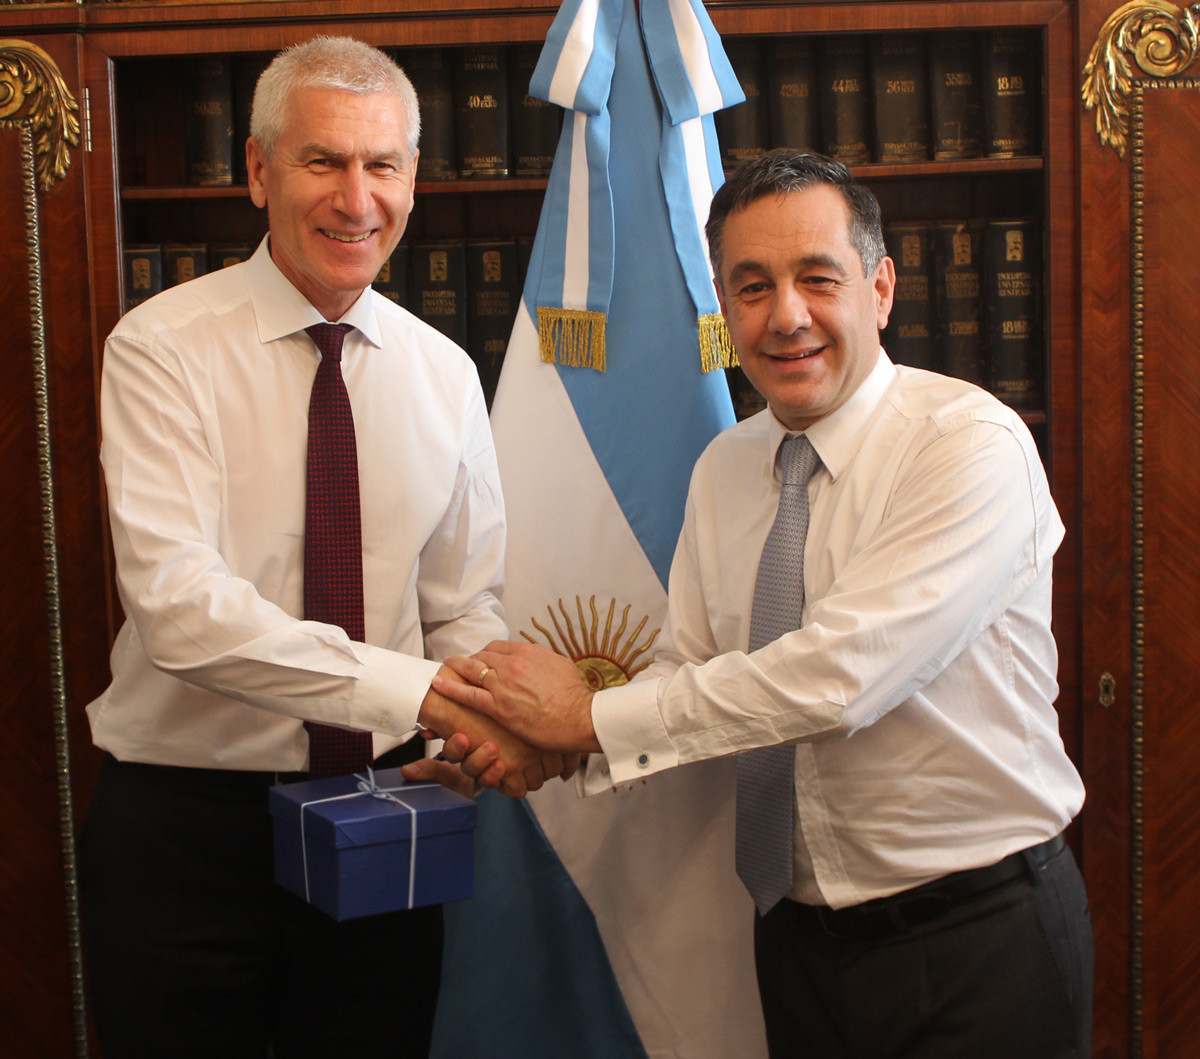 FISU President discusses upcoming Universiades with IOC members in Buenos Aires